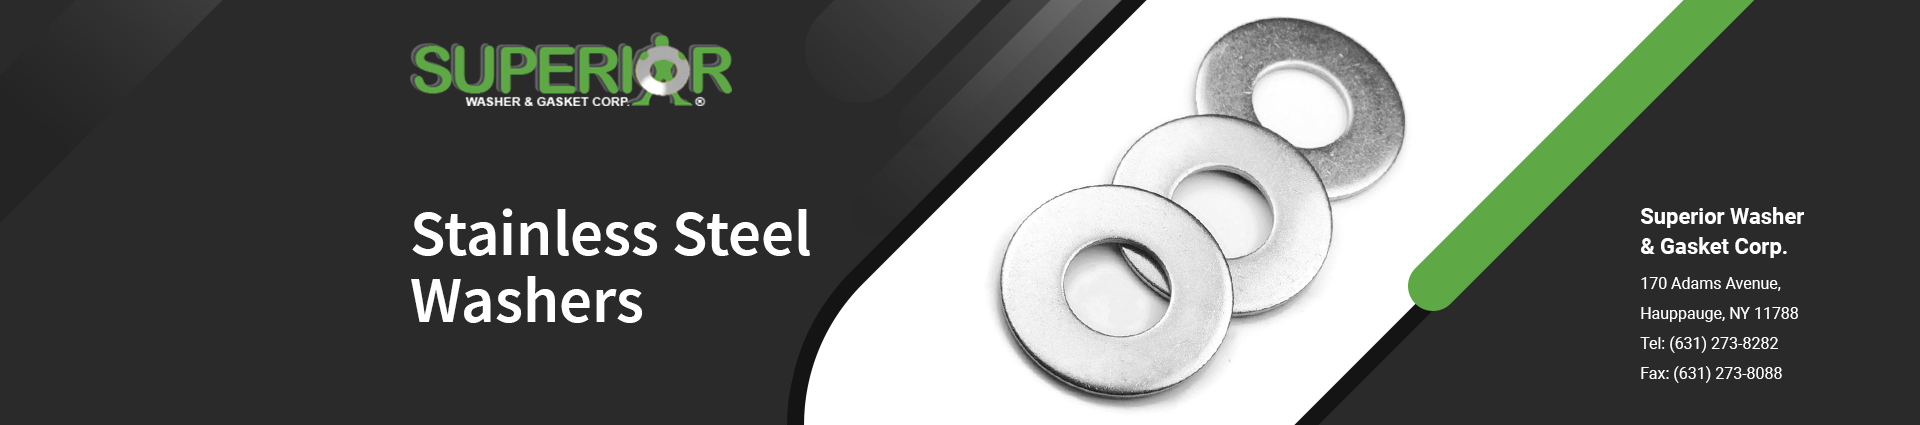 stainless-steel-washers banner Superior Washer & Gasket Corp